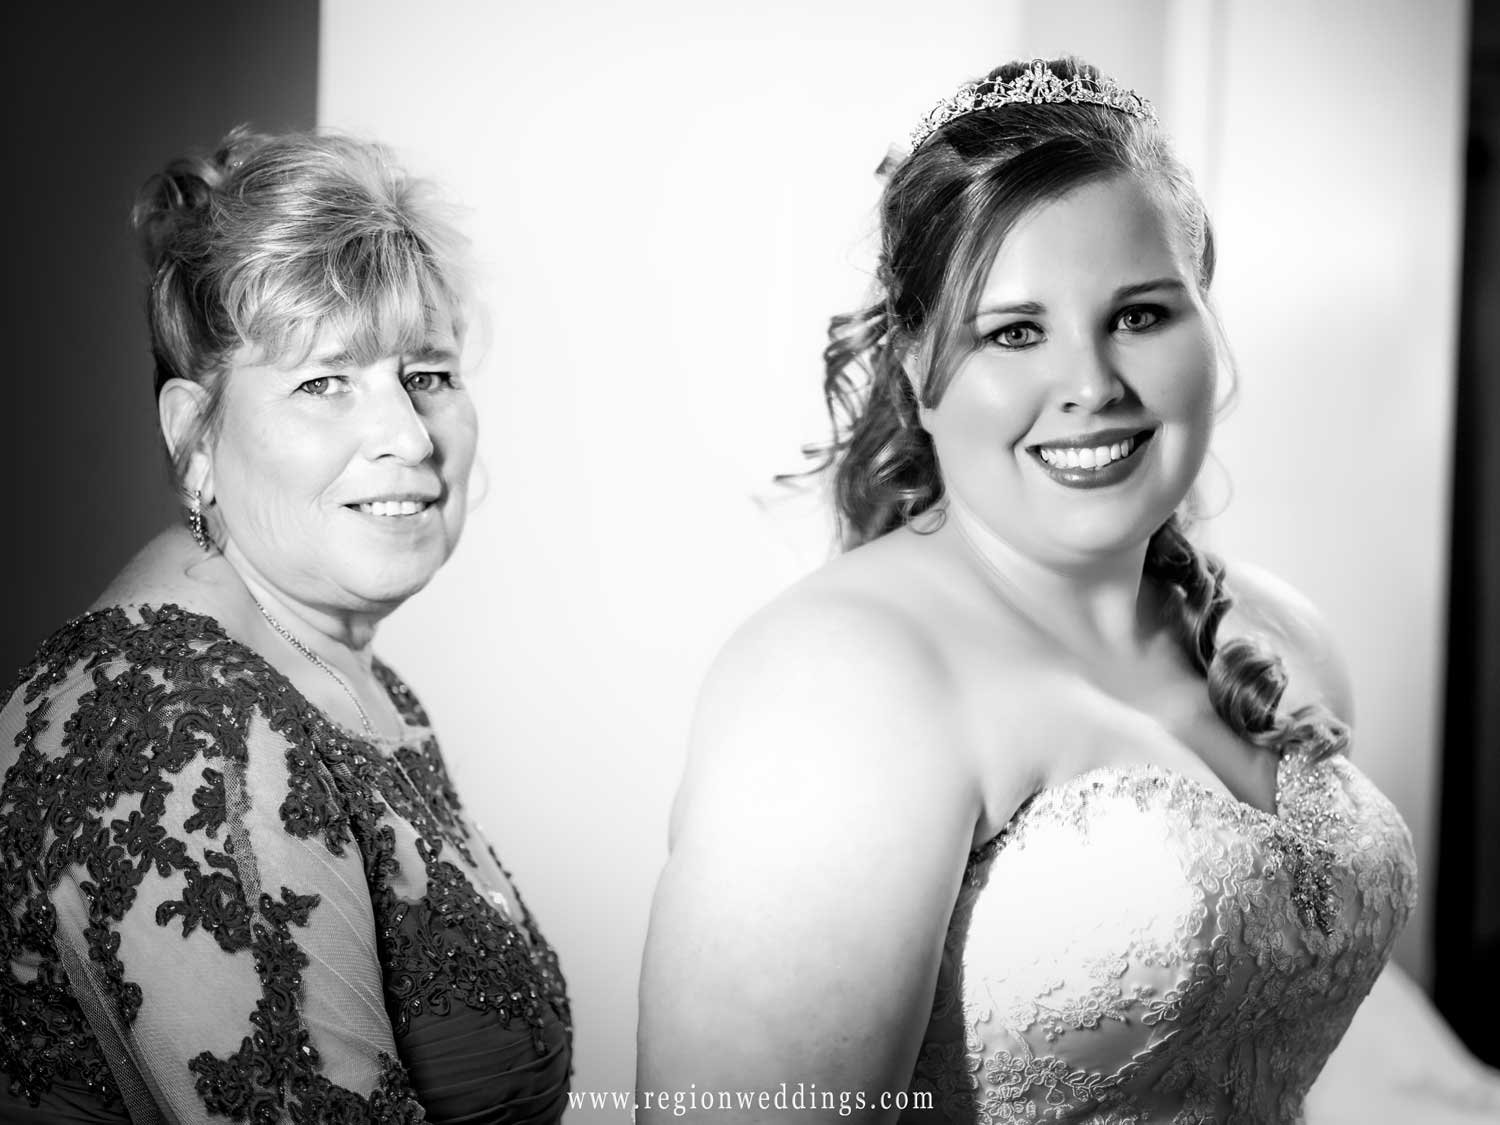 Mom and daughter on wedding day.